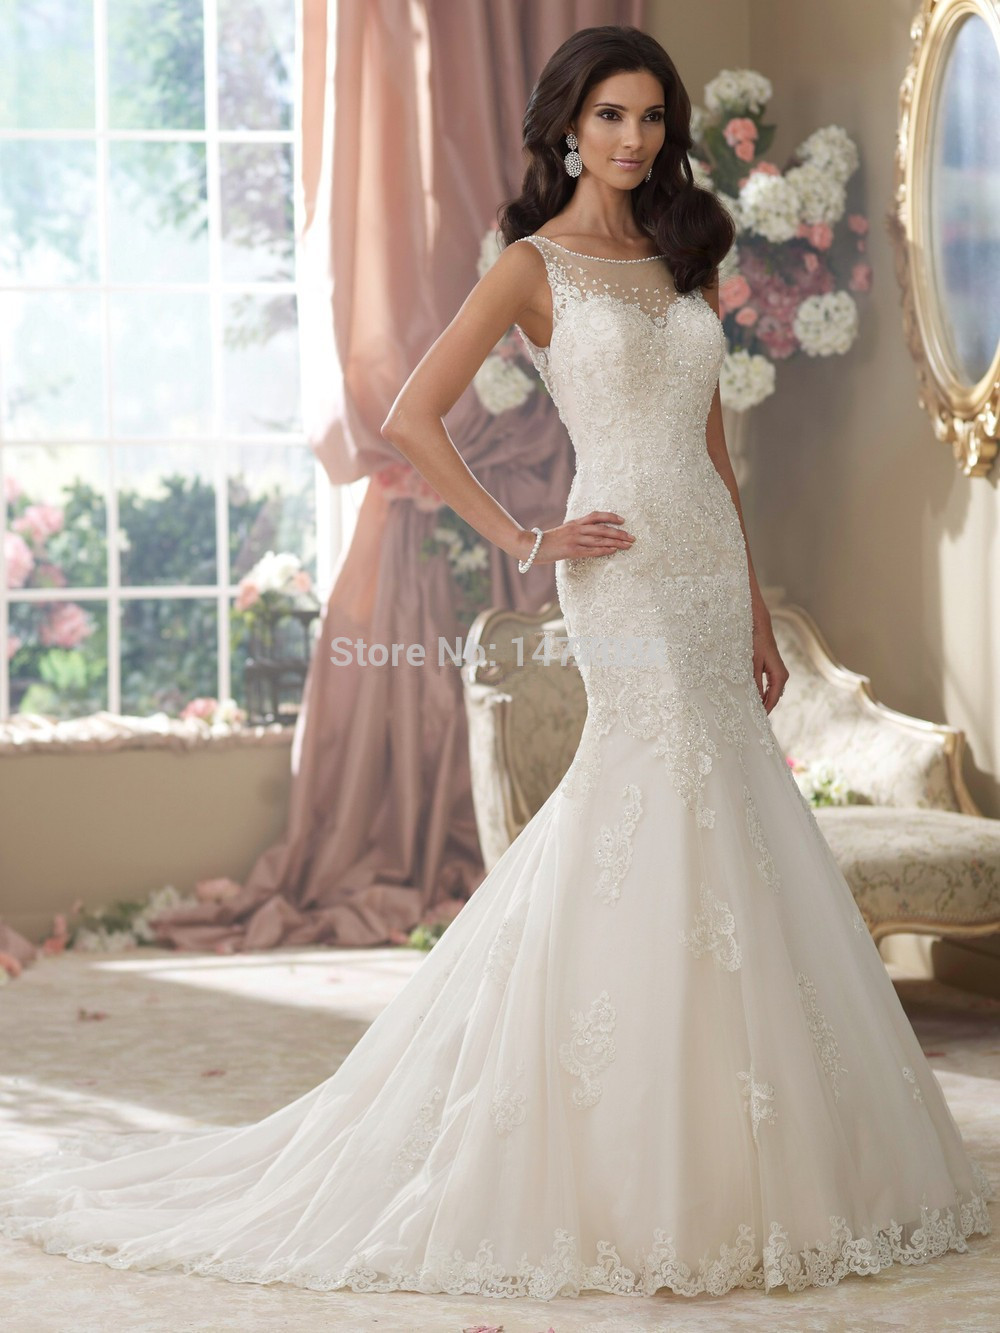 2015 Sweetheart Applique Beaded Strapless Mermaid Wedding Dress Customer Made Chapel Train Back Open ( Two wedding dress price)(China (Mainland))